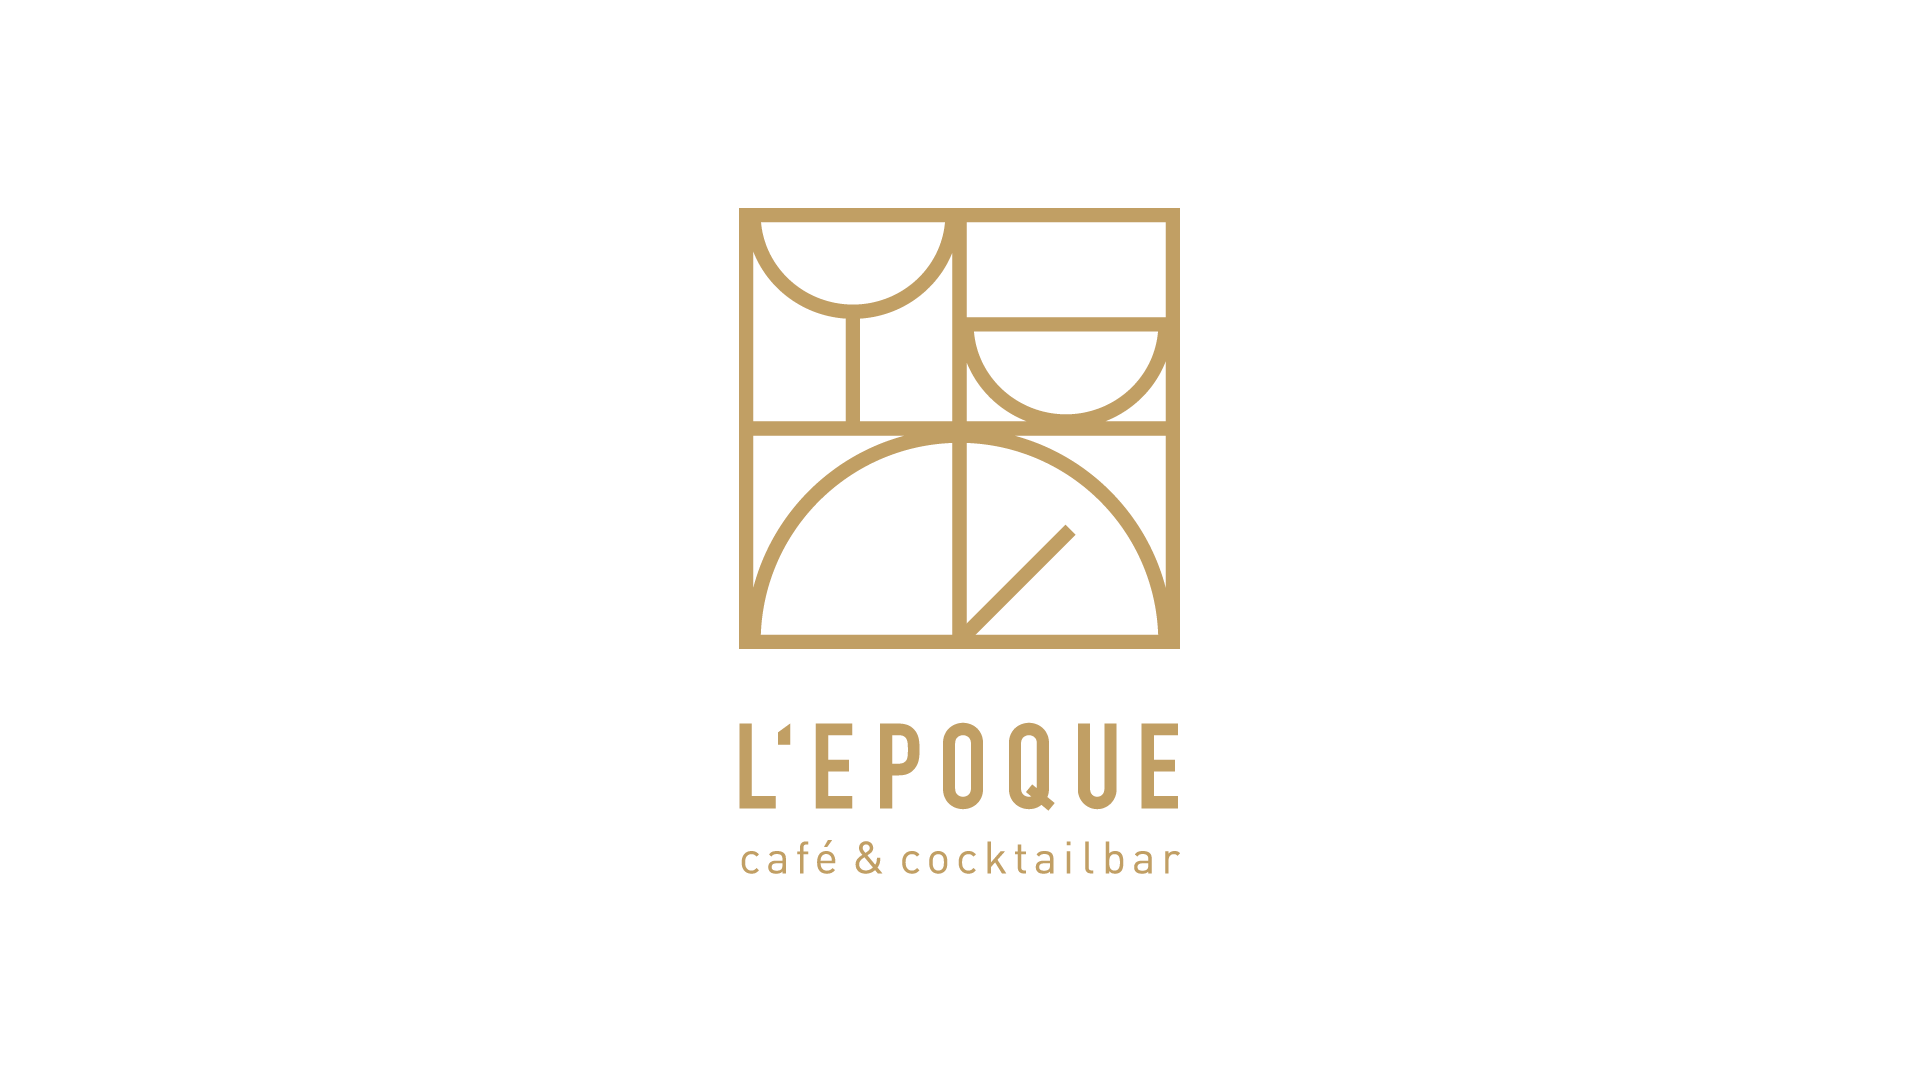 L'EPOQUE cafe & cocktailbar